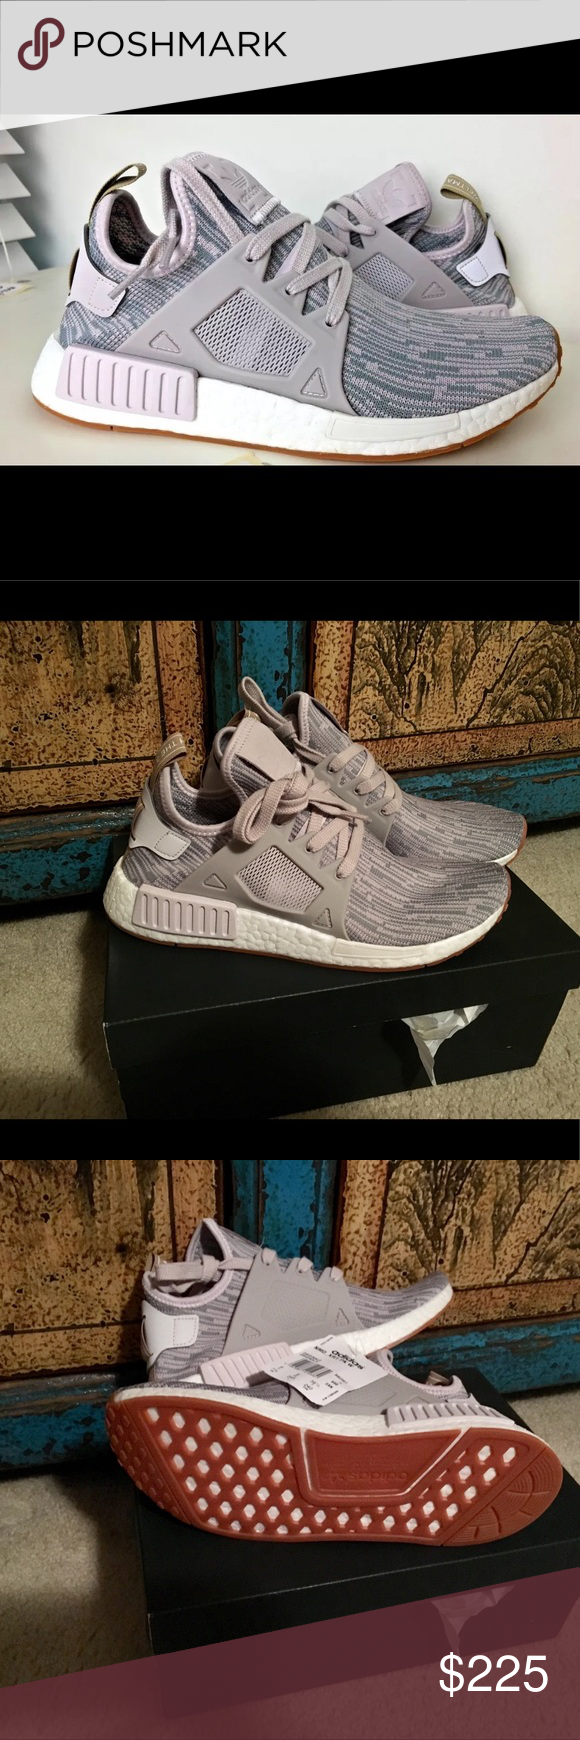 a5ebb562df99b Adidas NMD XR1 (women s 7.5) New in box Adidas NMD XR1 PK Gum Pack Primeknit  Sneakers Ice Purple Grey BB2367 Size  Women s 7.5 Condition  New in original  ...